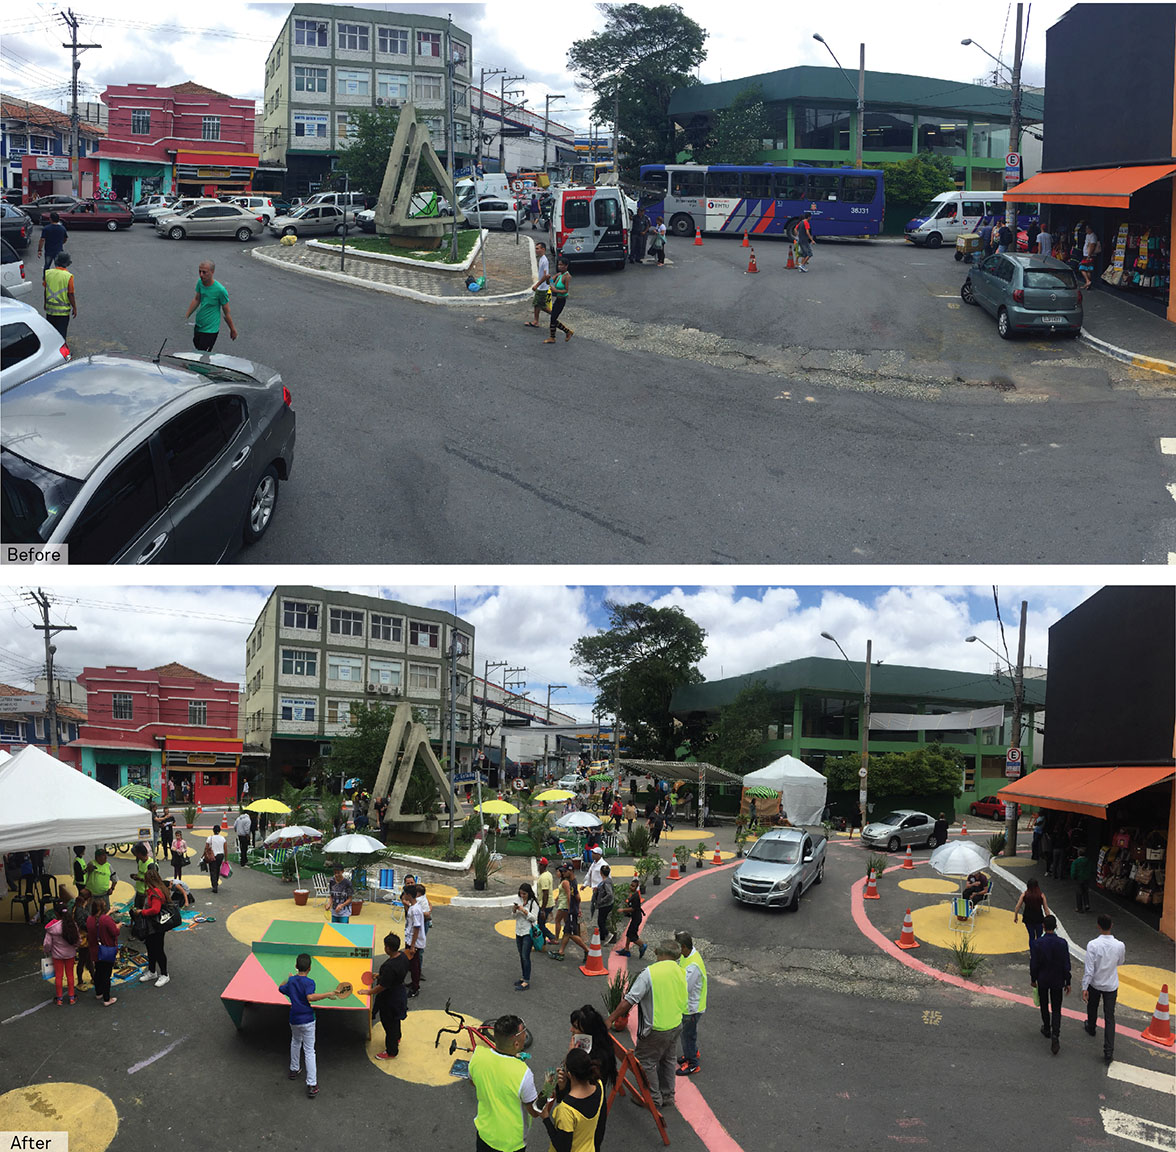 A vibrant and active pedestrian plaza, and multiple pedestrian crossings emerge during NACTO's one-day pop-up transformation event in Sao Miguel,São Paulo.